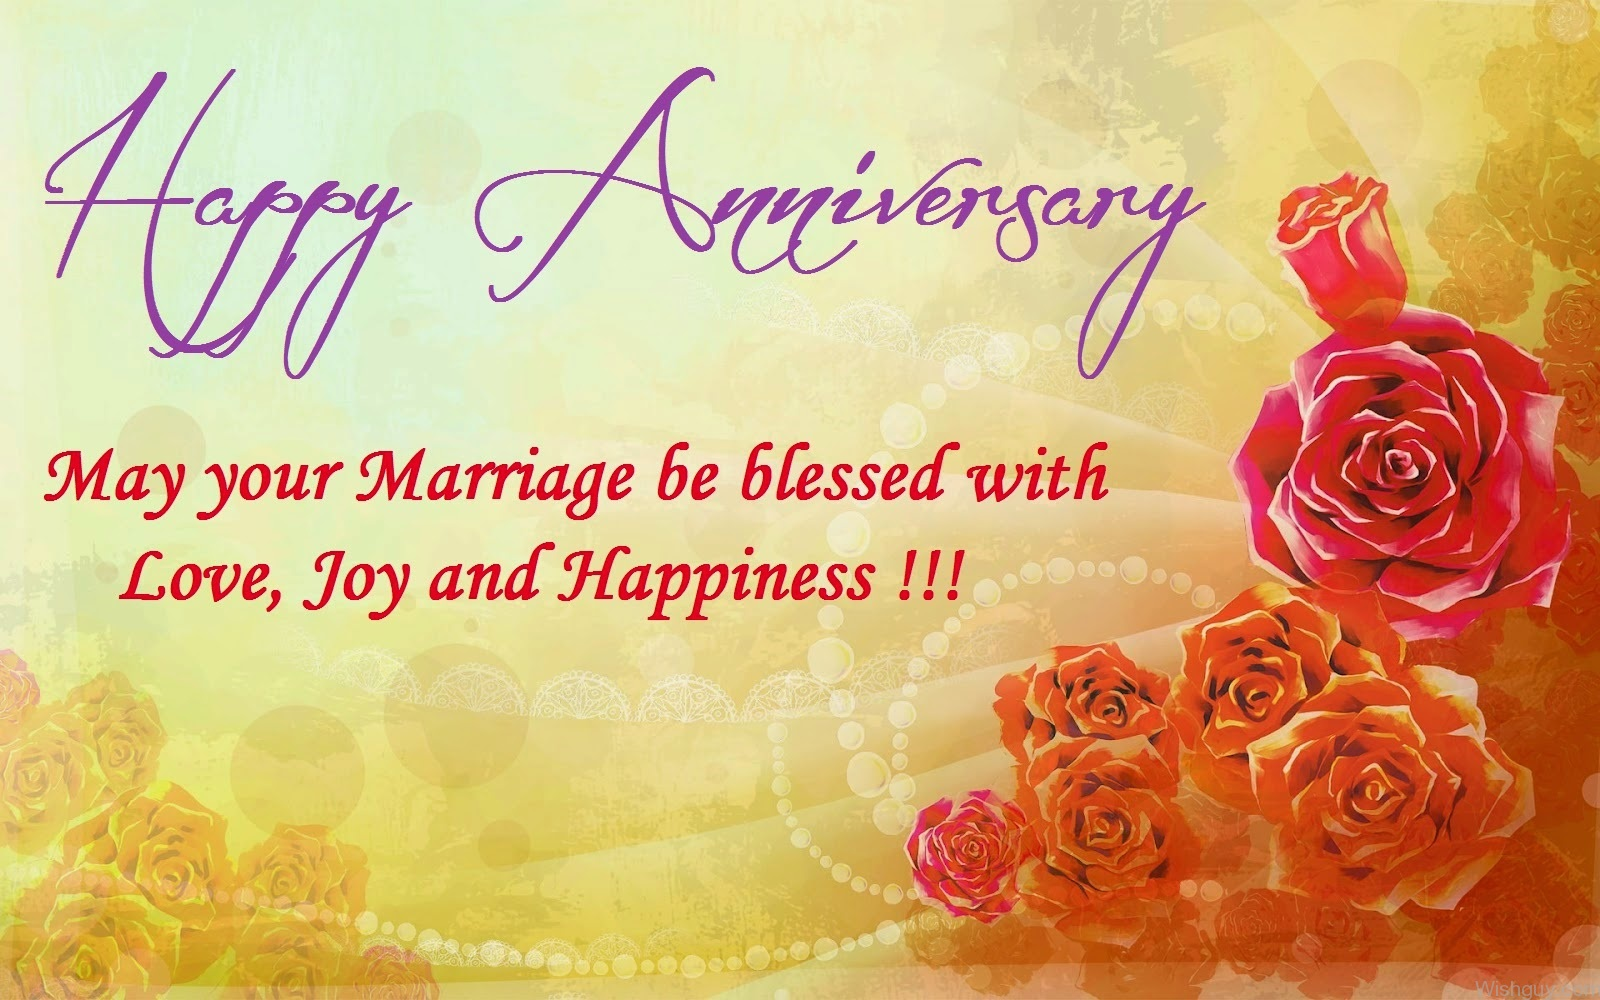 Happy Marriage Anniversary Quotes Happy Wedding Anniversary Wishes Images With Cute Messages For